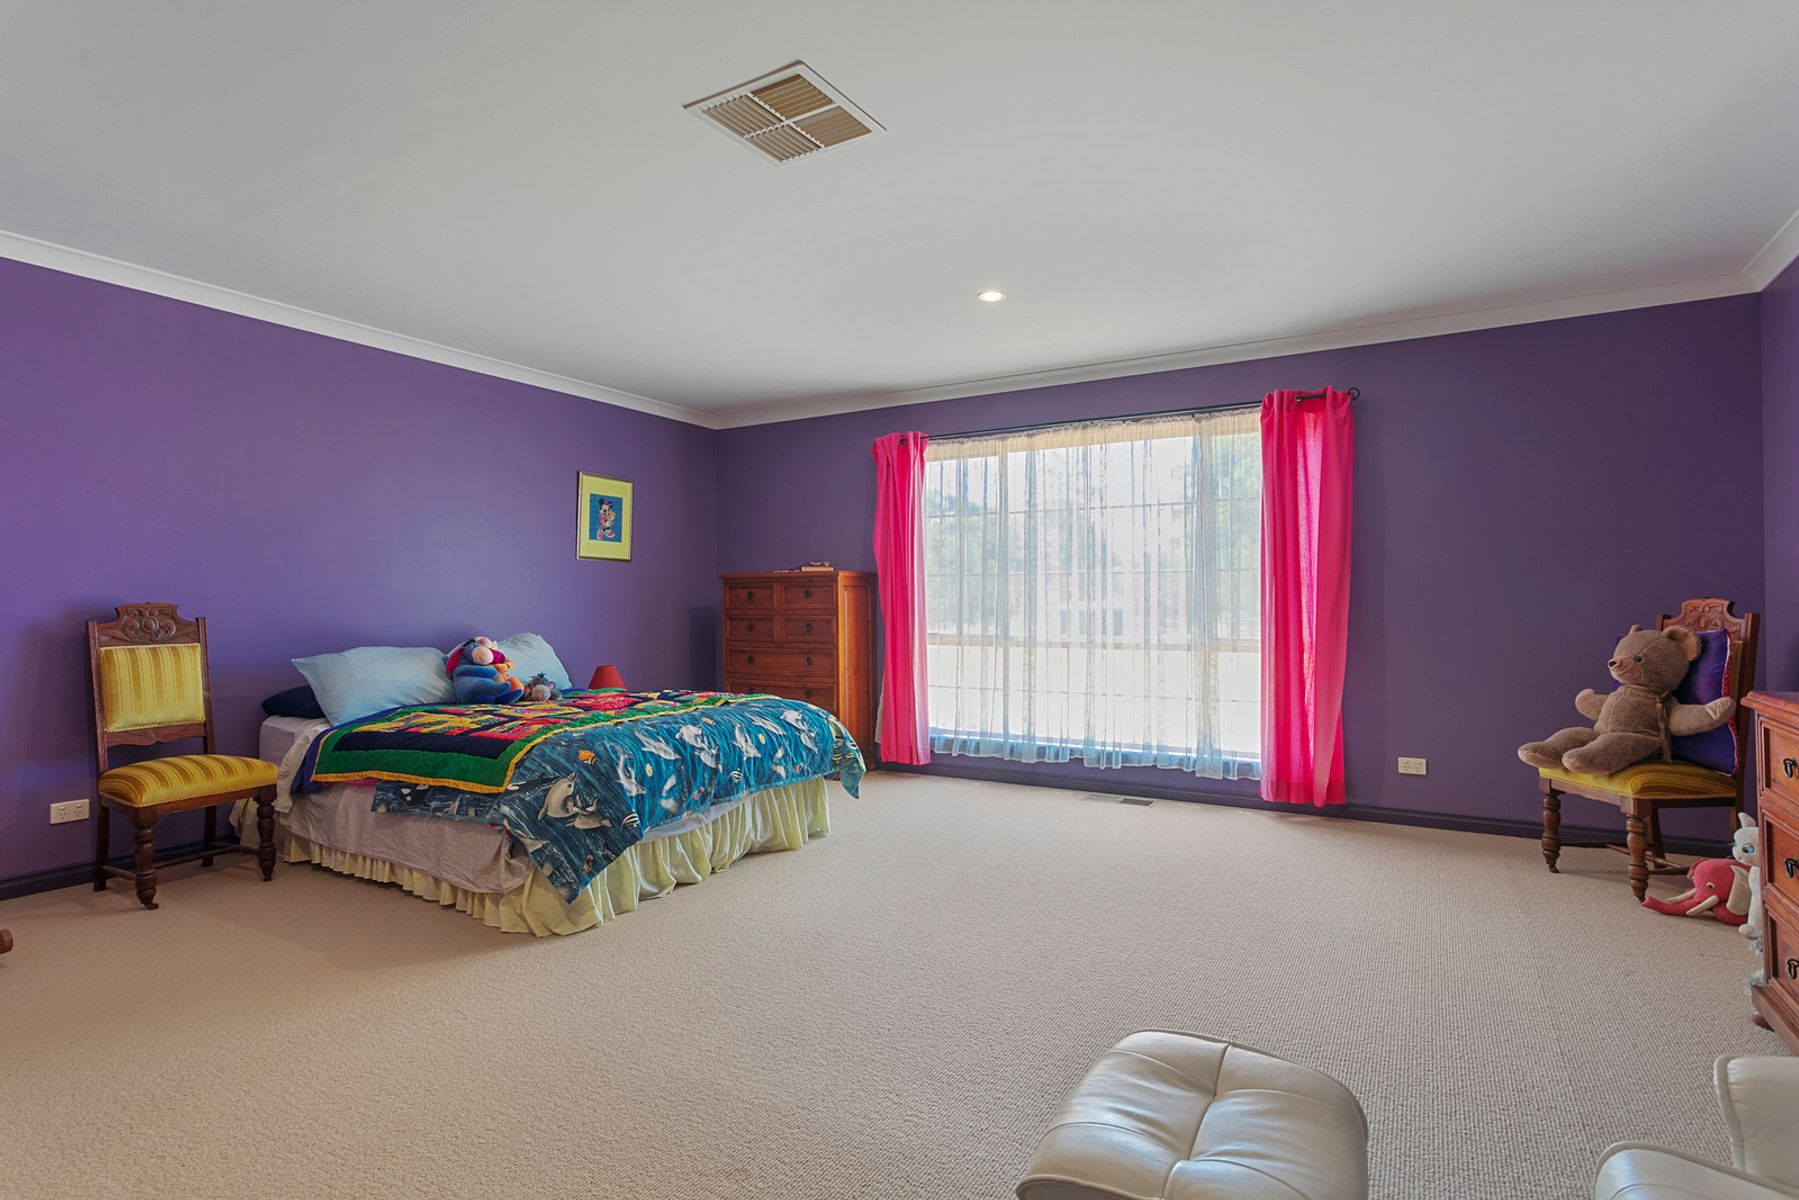 171 Pinjarra Drive, Lockwood South, VIC 3551